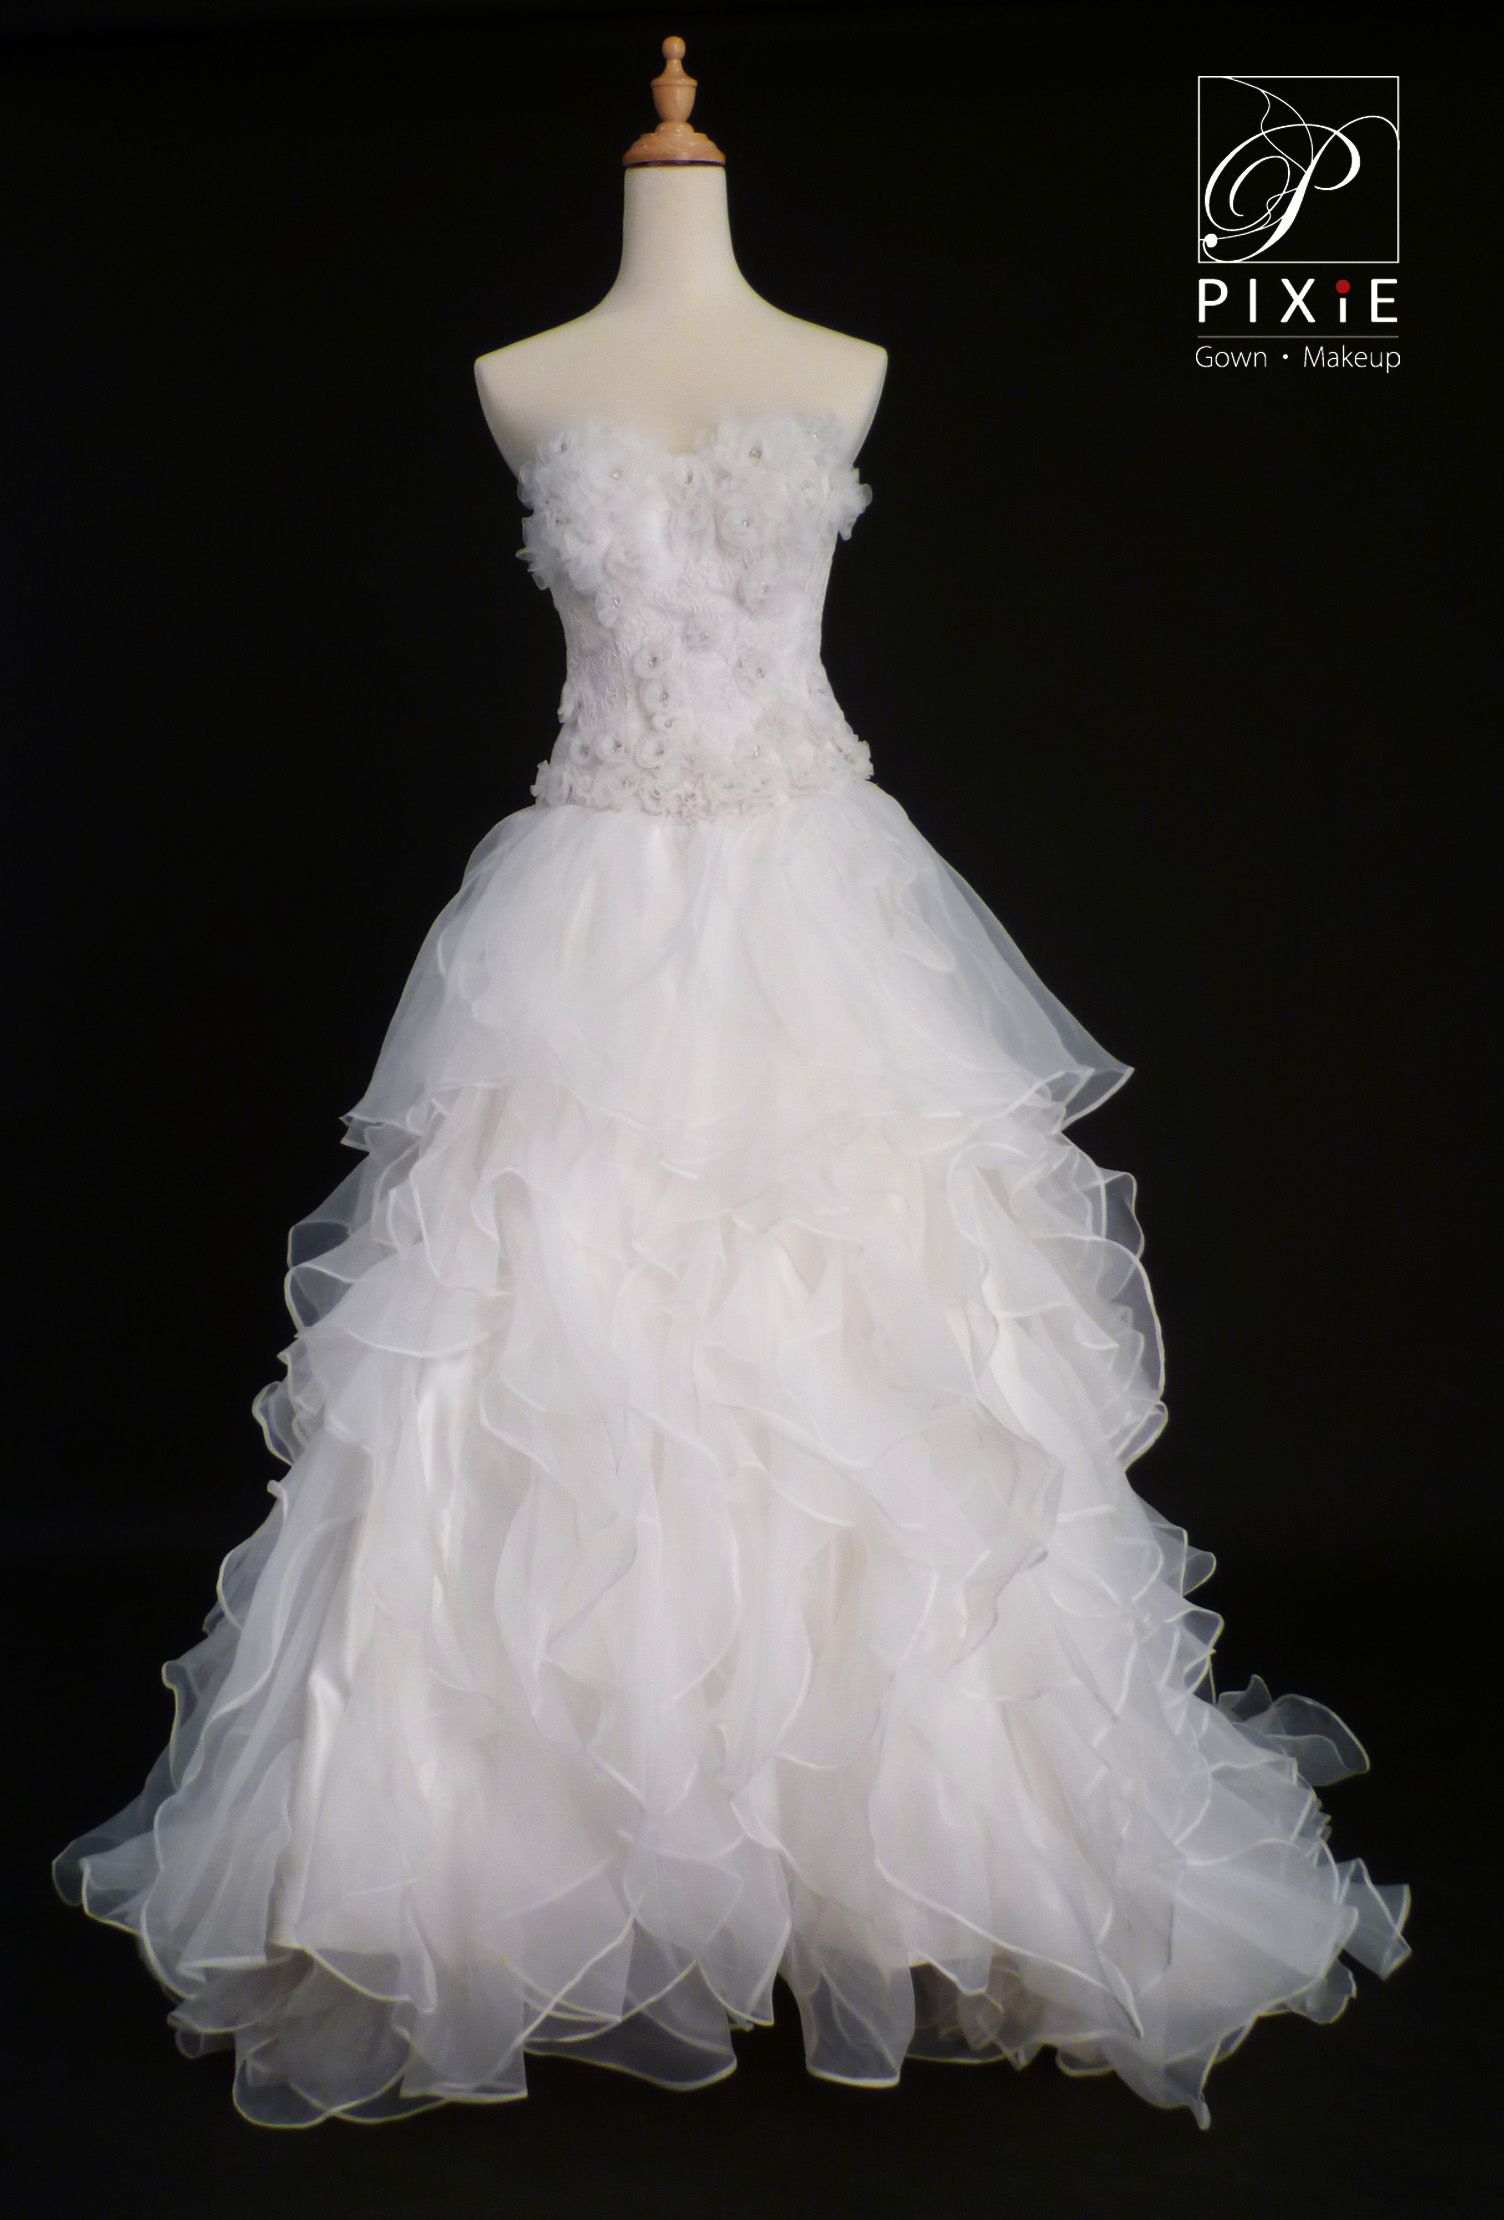 Pixie Wedding Dress With Floral Embellishment And Ruffles Skirt